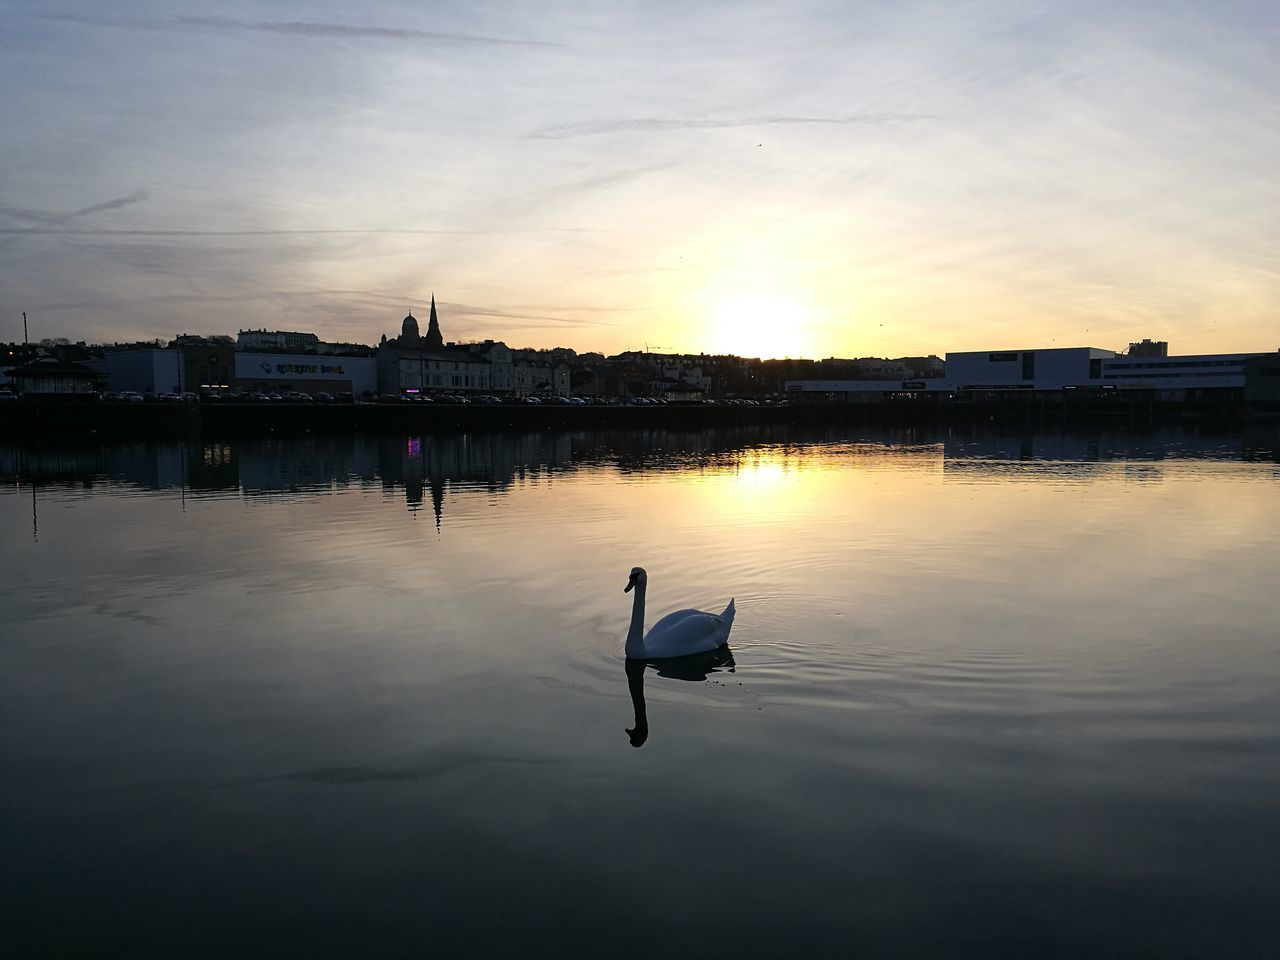 Sunset Water Reflection Tranquility Outdoors Cloud - Sky Lake Nature Swan New Brighton Wirral Merseyside Cheshire Marine Marina